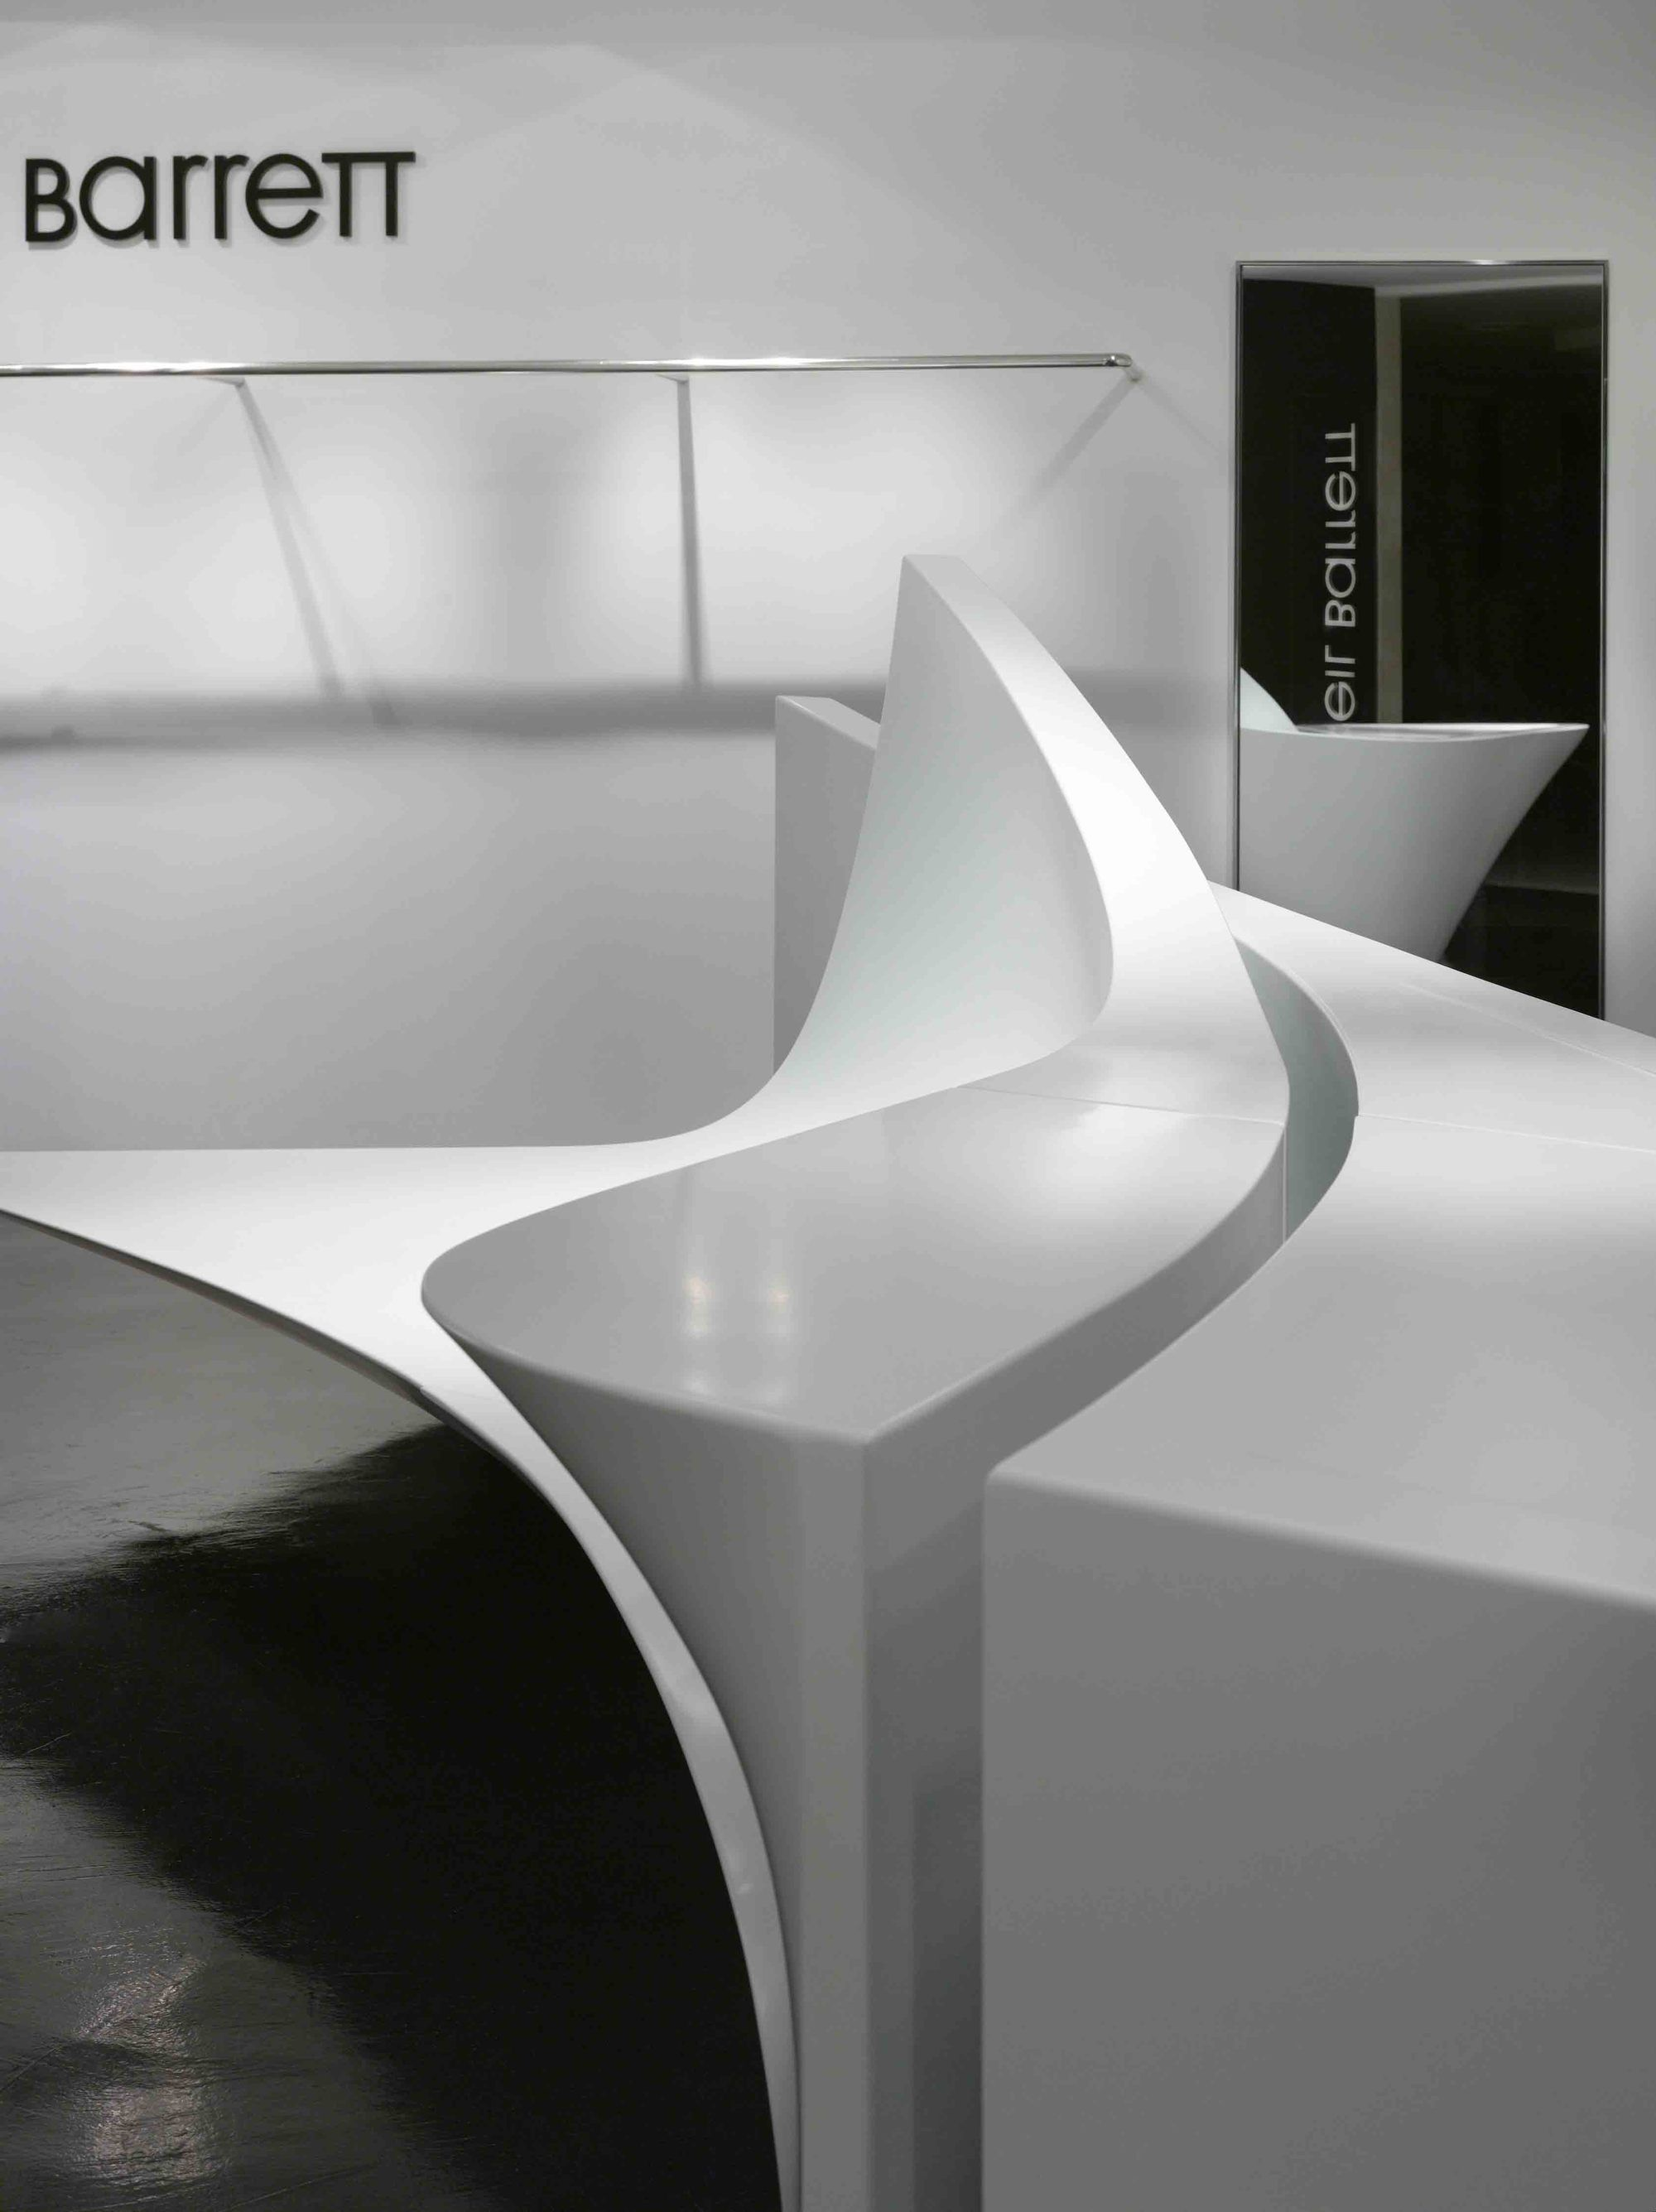 Famous Chairs By Architects Gallery Of Neil Barrett 39shop In Shop 39 Zaha Hadid